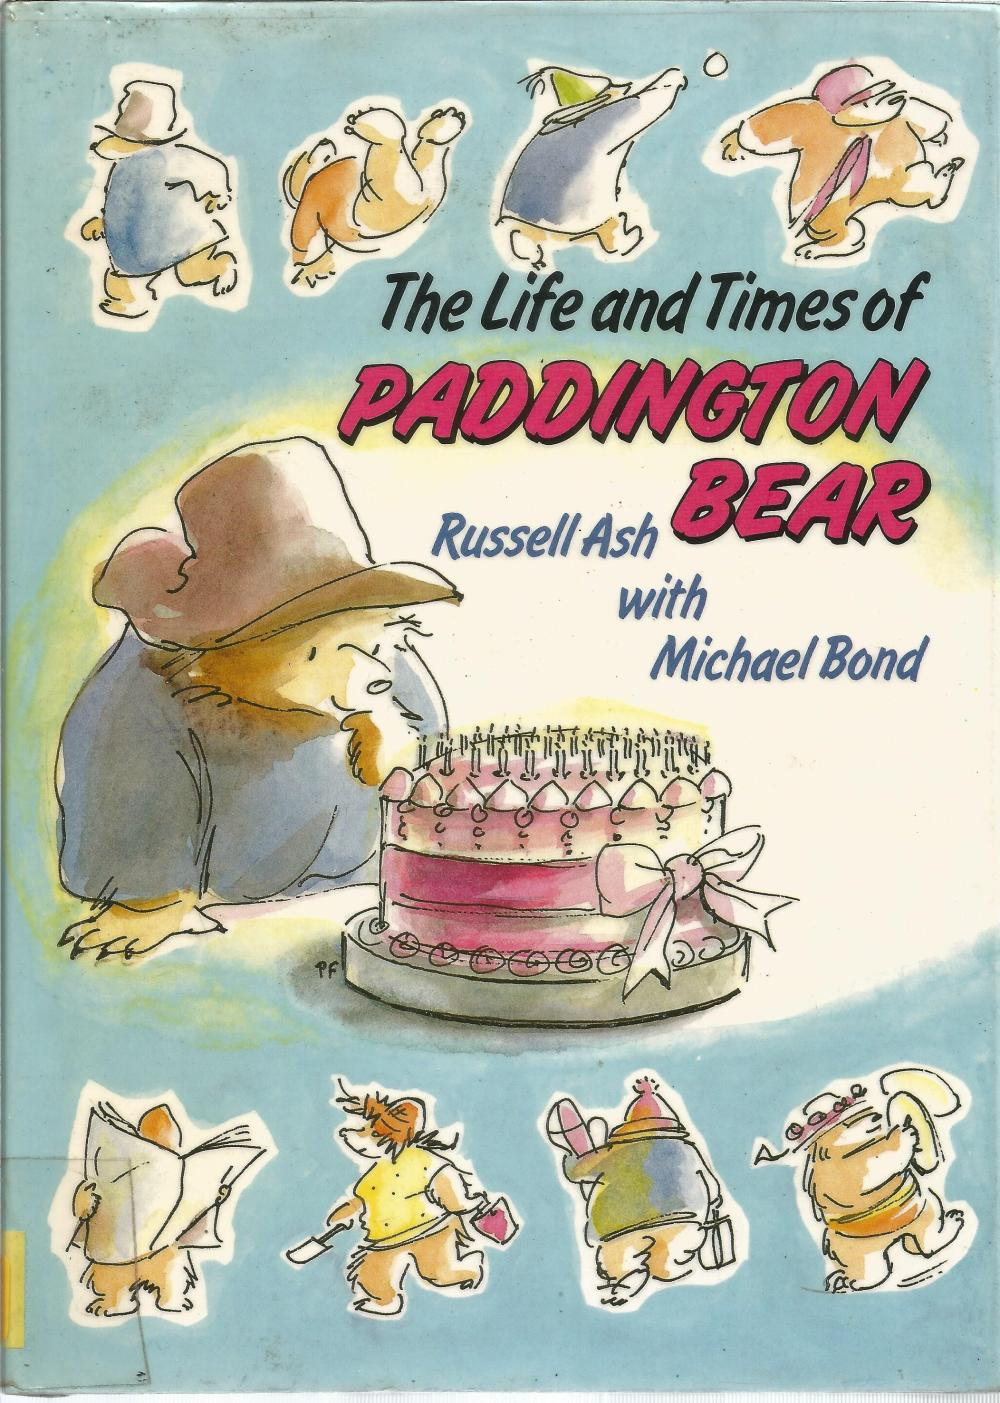 The Life and Times of Paddington Bear by Russell Ash and Michael Bond. Unsigned hardback book